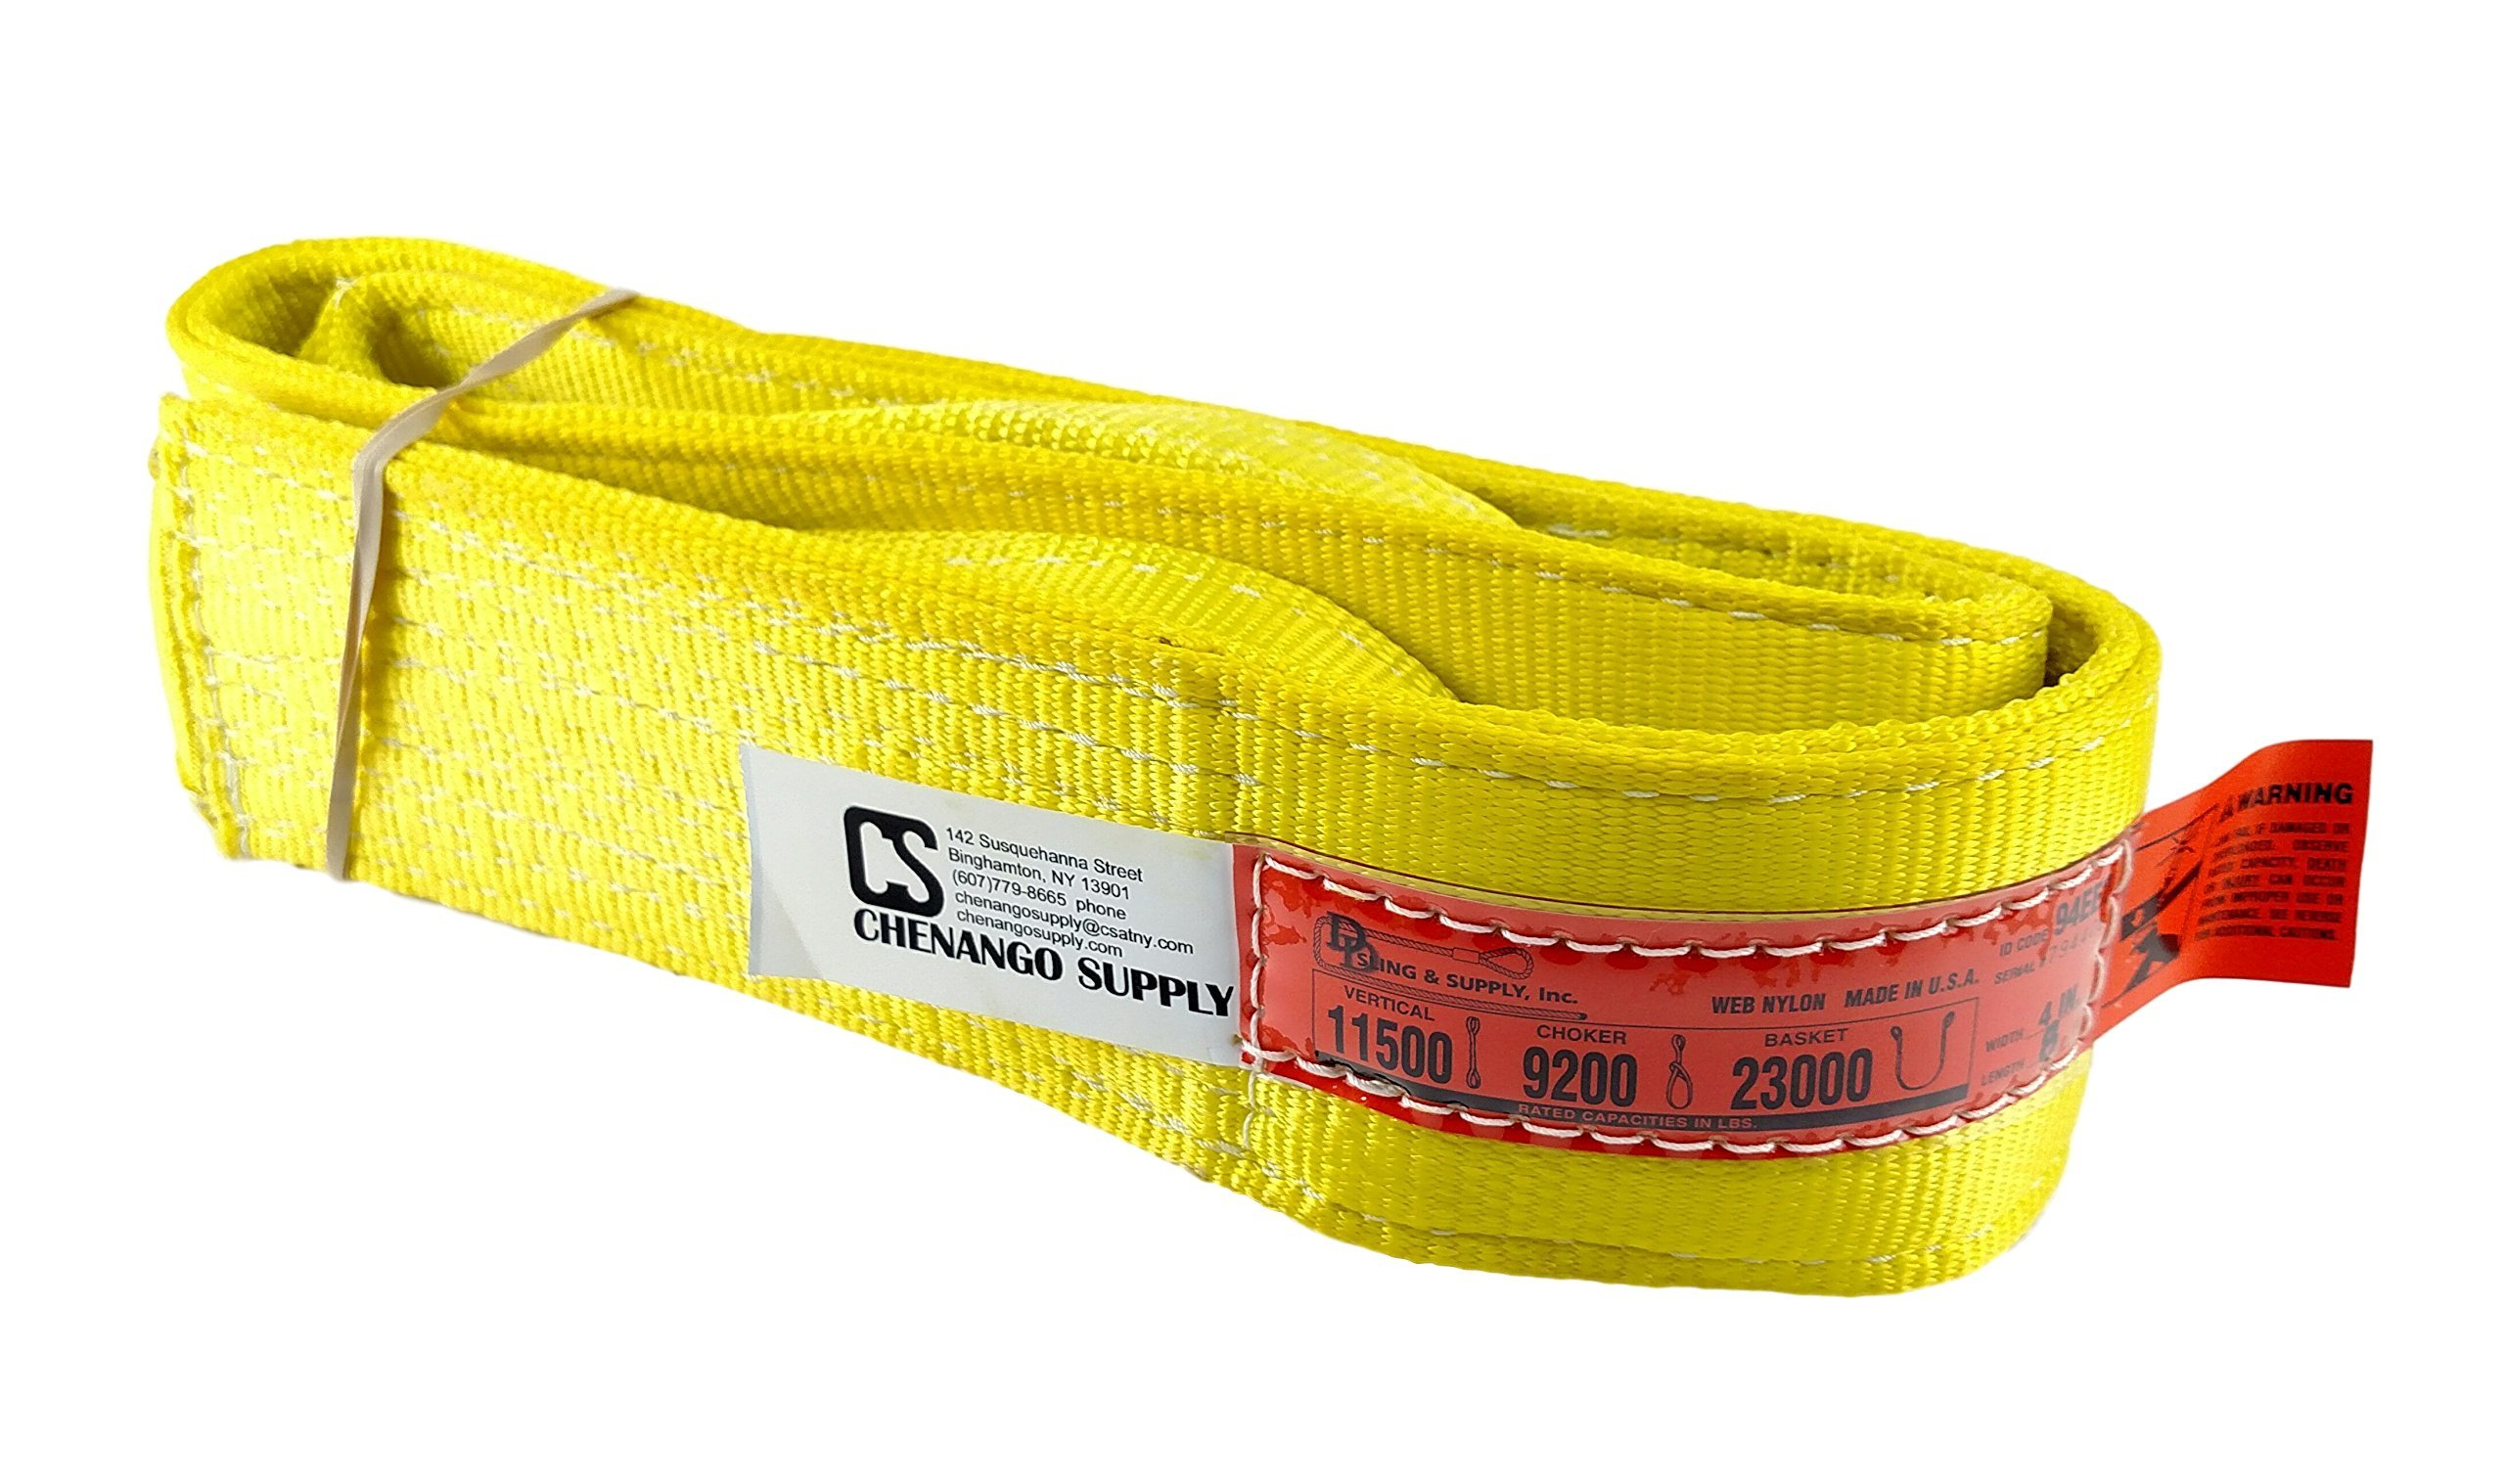 DD Sling (USA Made). Many Sizes in Listing! 4'' x 8', 2 Ply Twisted Eye, Nylon Lifting Slings, Eye & Eye, Heavy Duty (900 webbing), 11,500 lbs Vertical, 9,200 Choker, 23,000 Basket Capacity (4'' x 8')